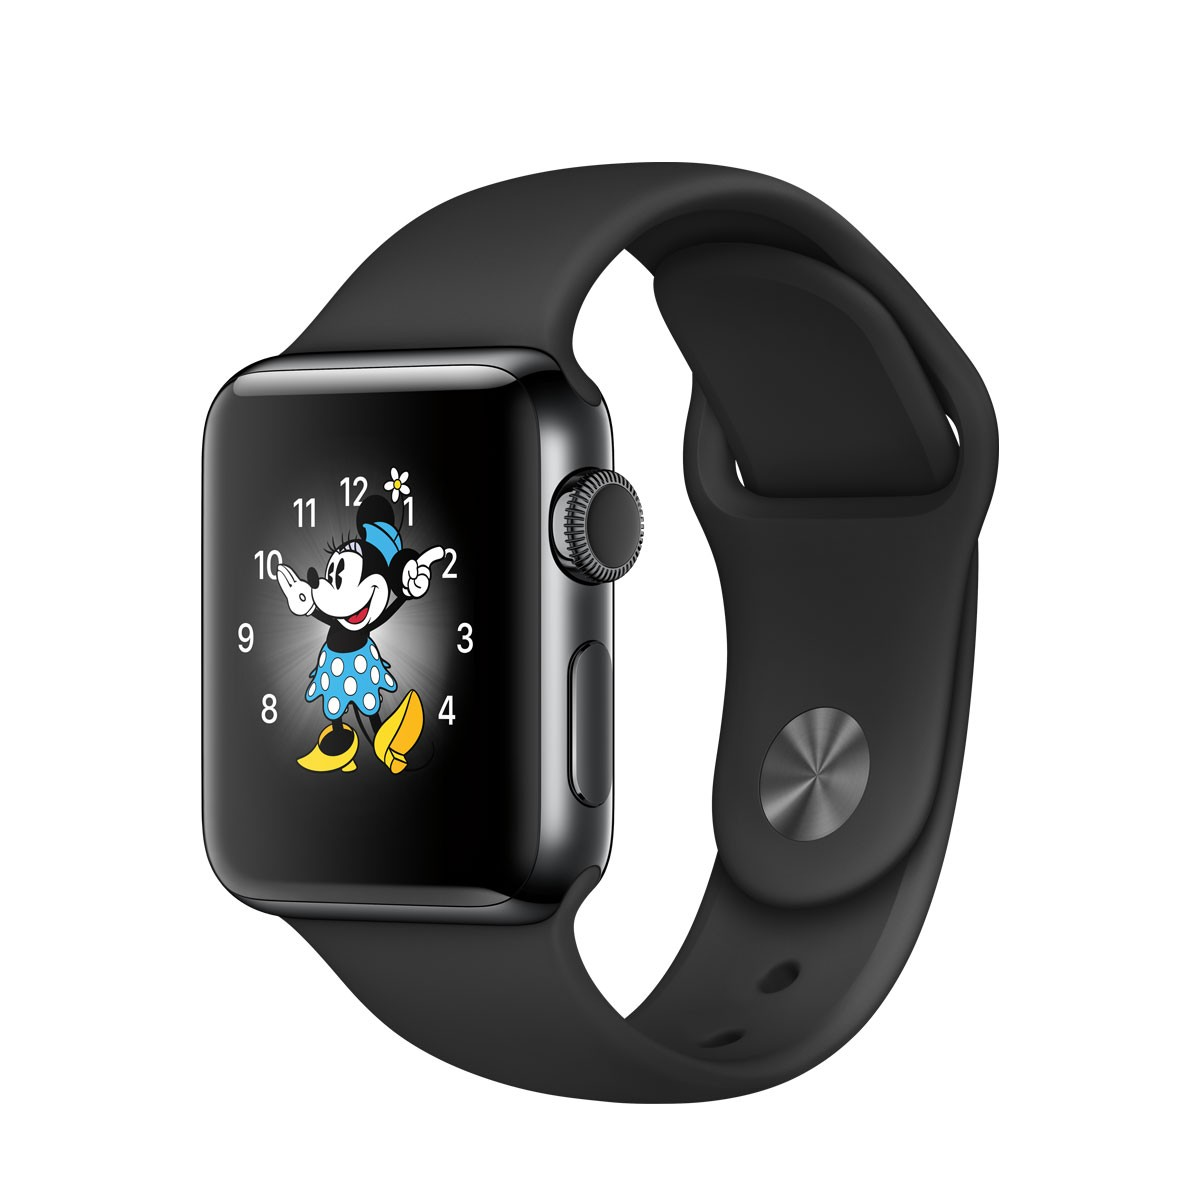 Apple Watch Series 2 - 38 mm Space Black Stainless Steel Case sa Space Black Sport Band